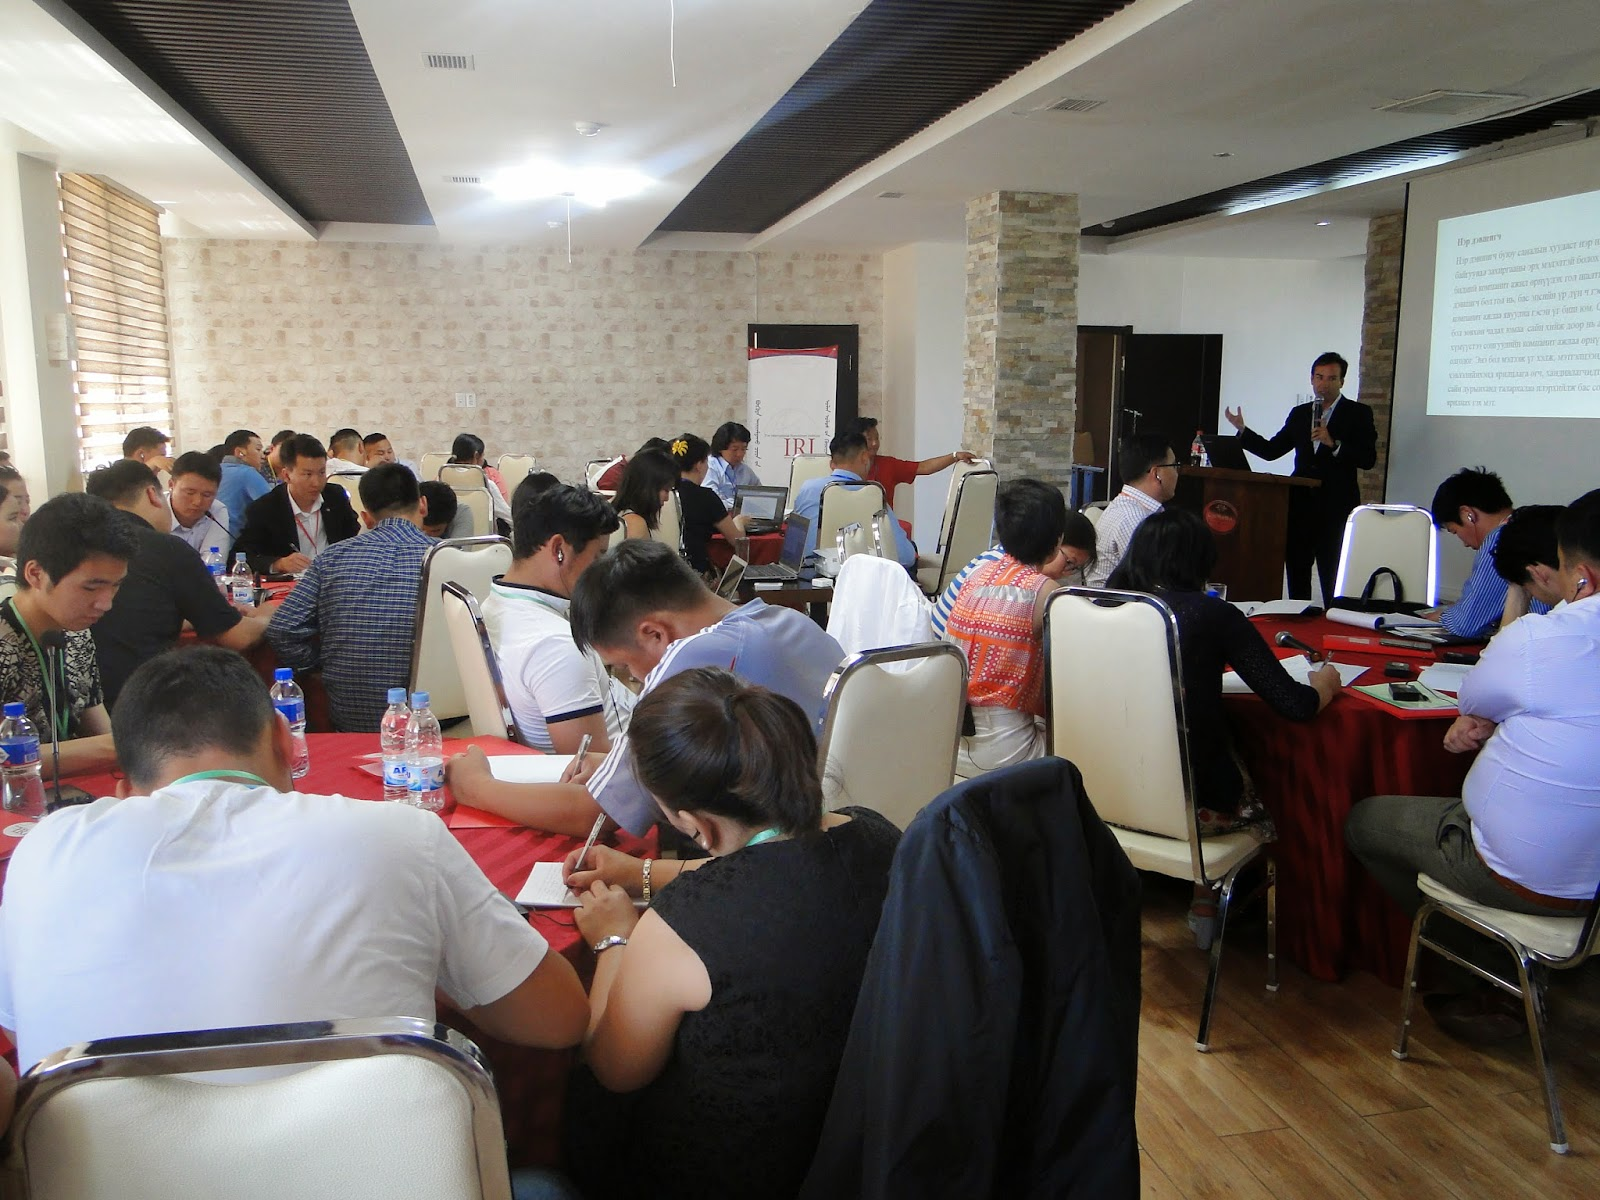 Of mongolia today tomorrow and the development bank of mongolia s - 2 Full Meeting Jpg